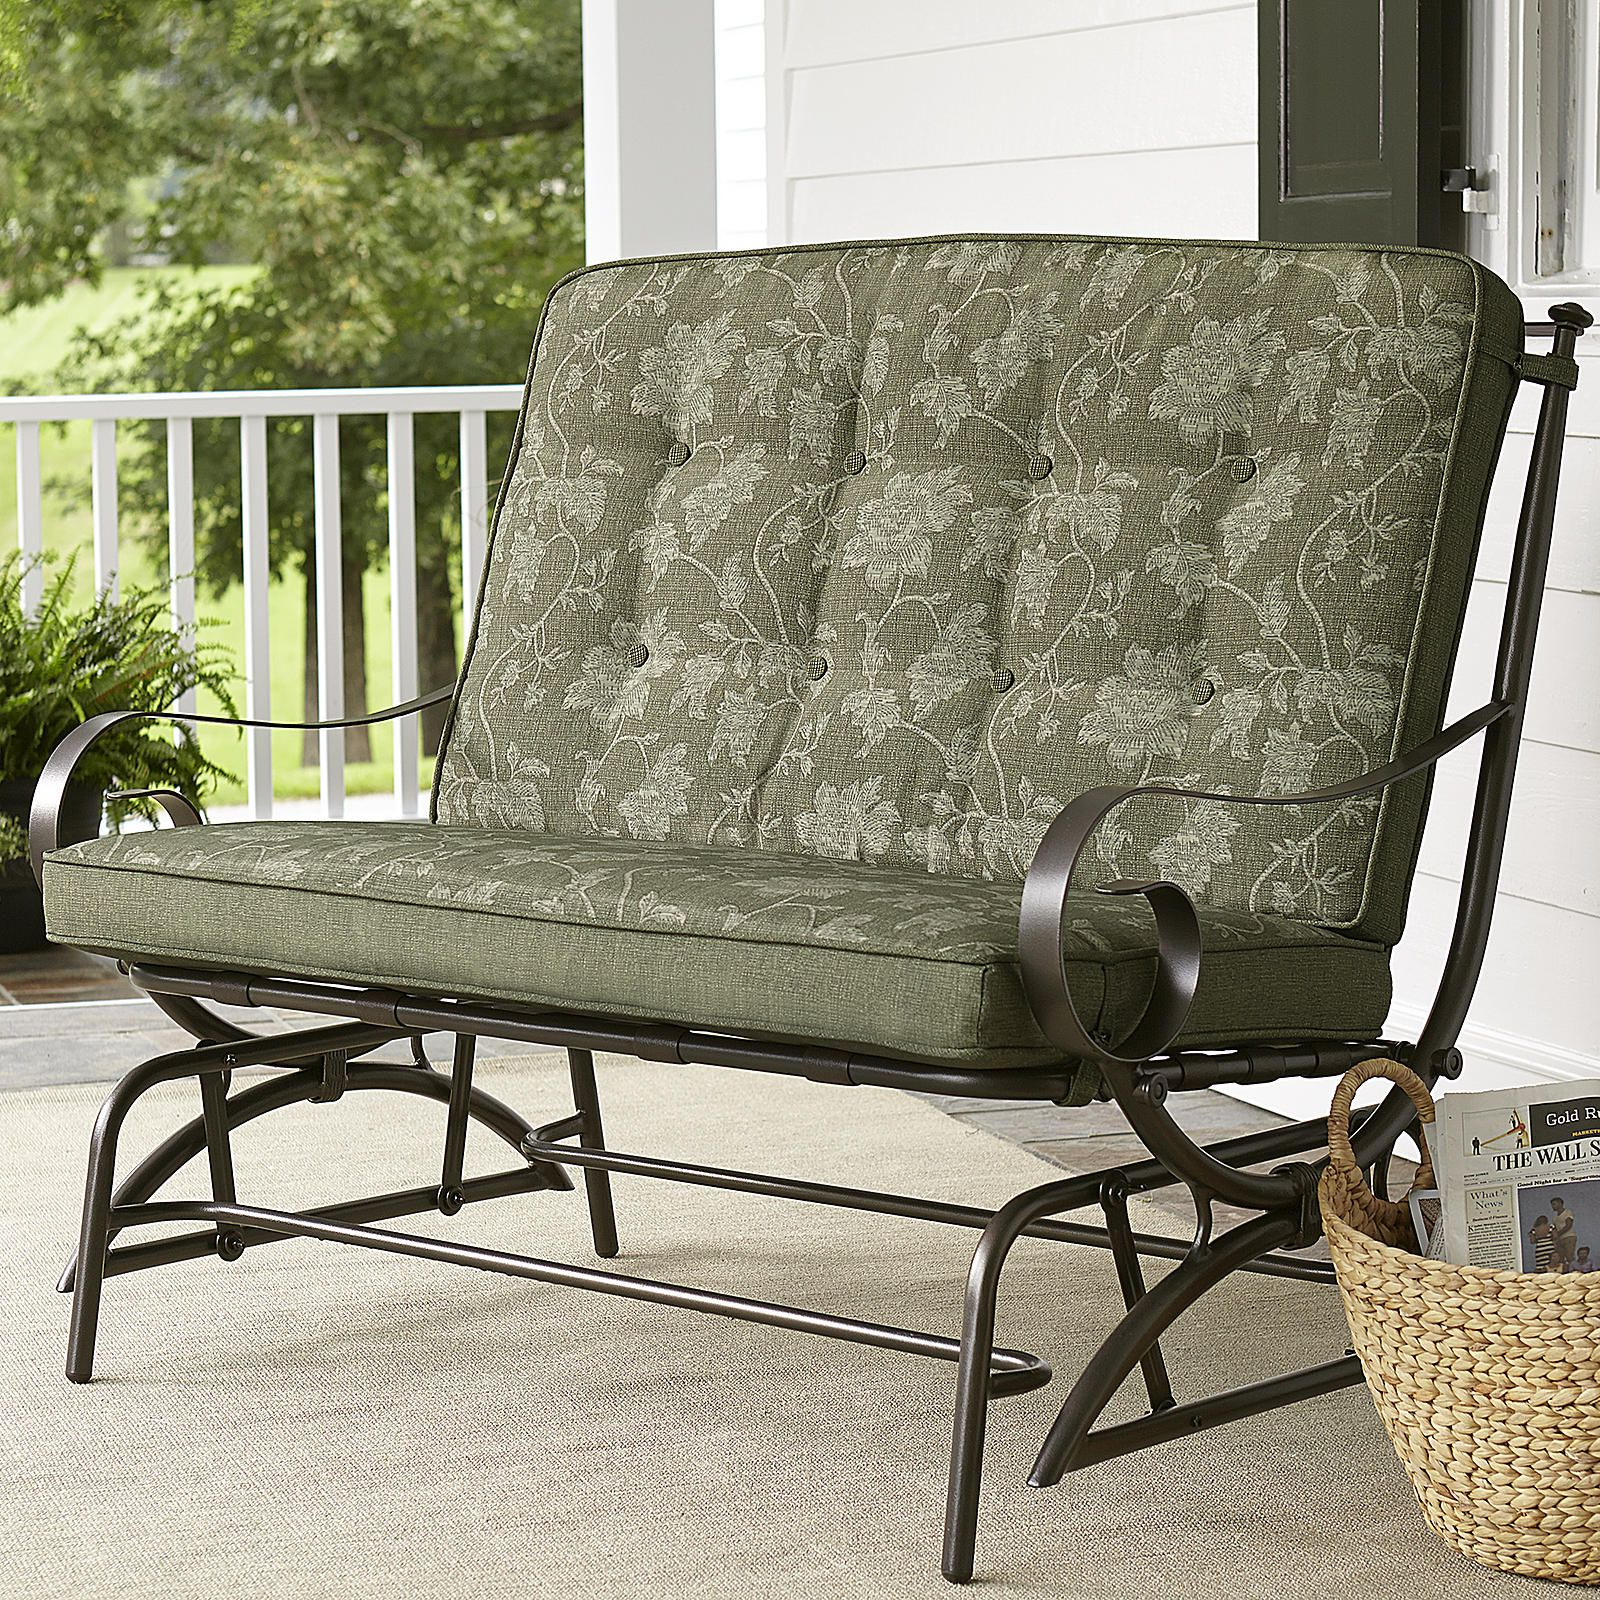 Well Liked Double Glider Benches With Cushion Throughout Jaclyn Smith Cora Cushion Double Glider – Outdoor Living (Gallery 2 of 30)